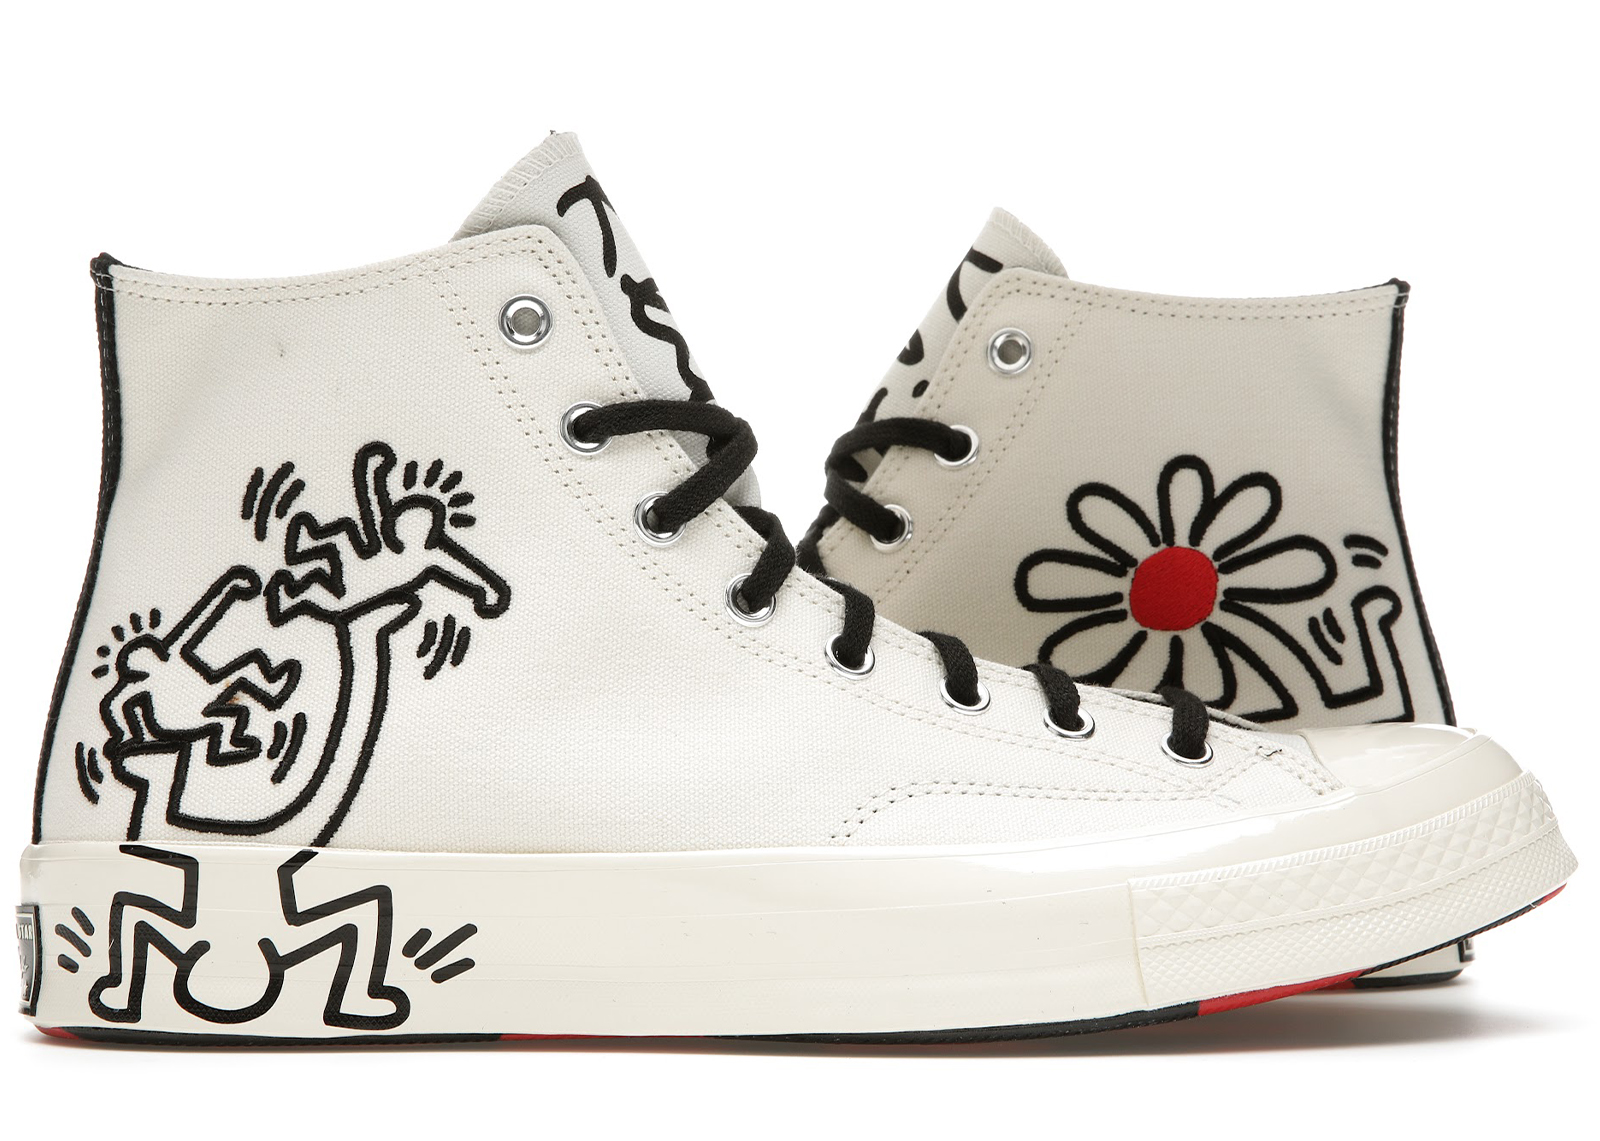 Buy Converse Shoes & Deadstock Sneakers